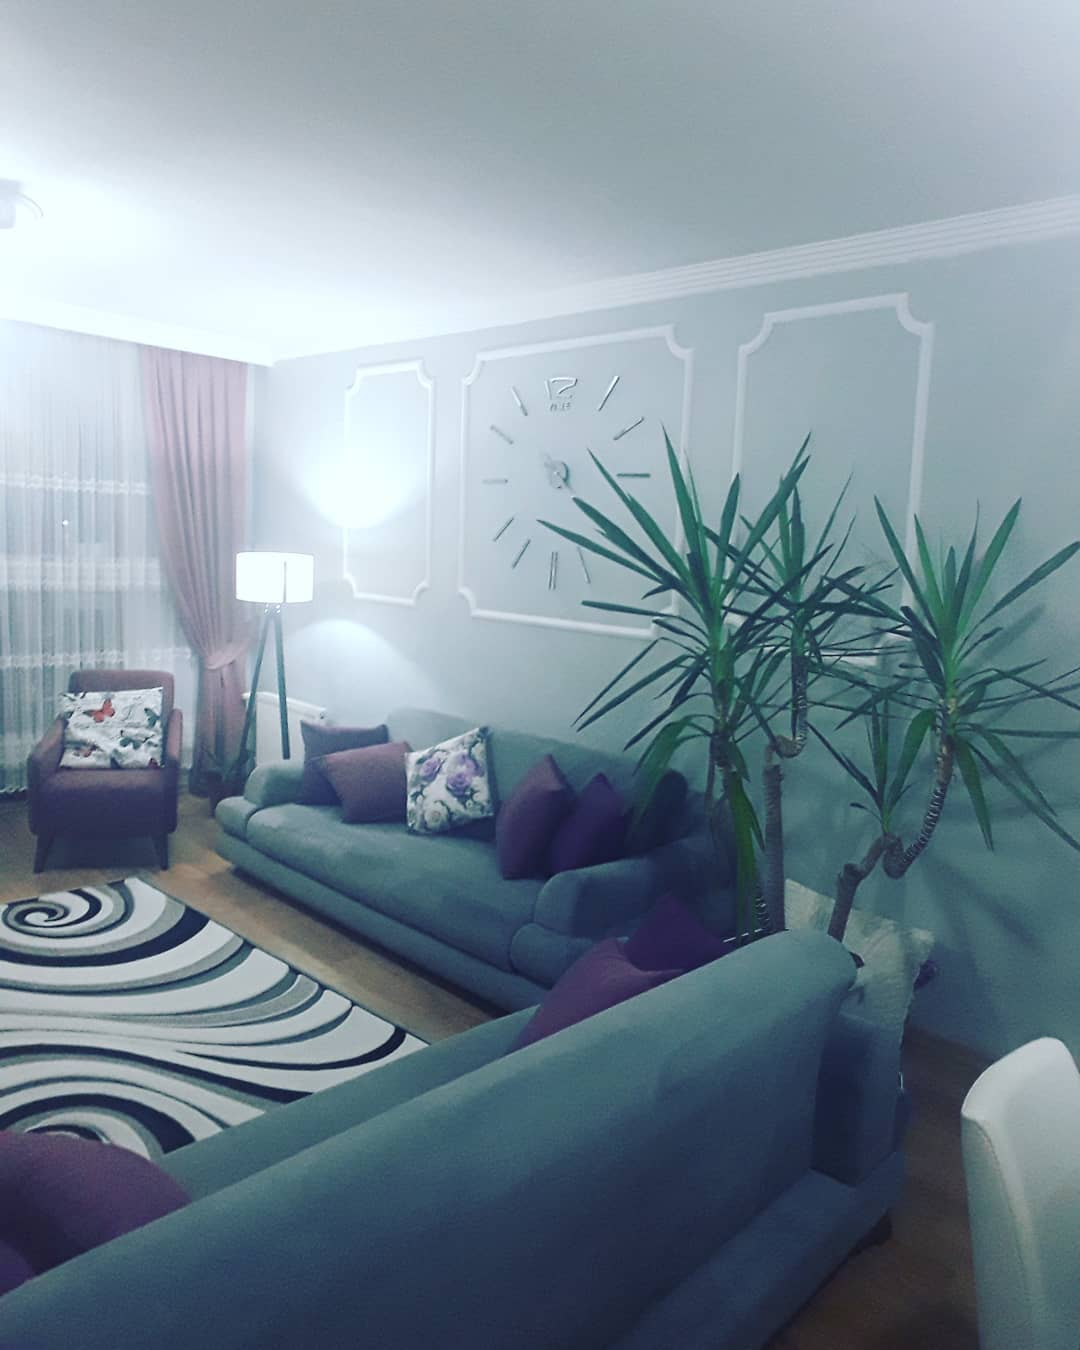 New Decor Trends for Home Designs and Ideas 2021 (65)